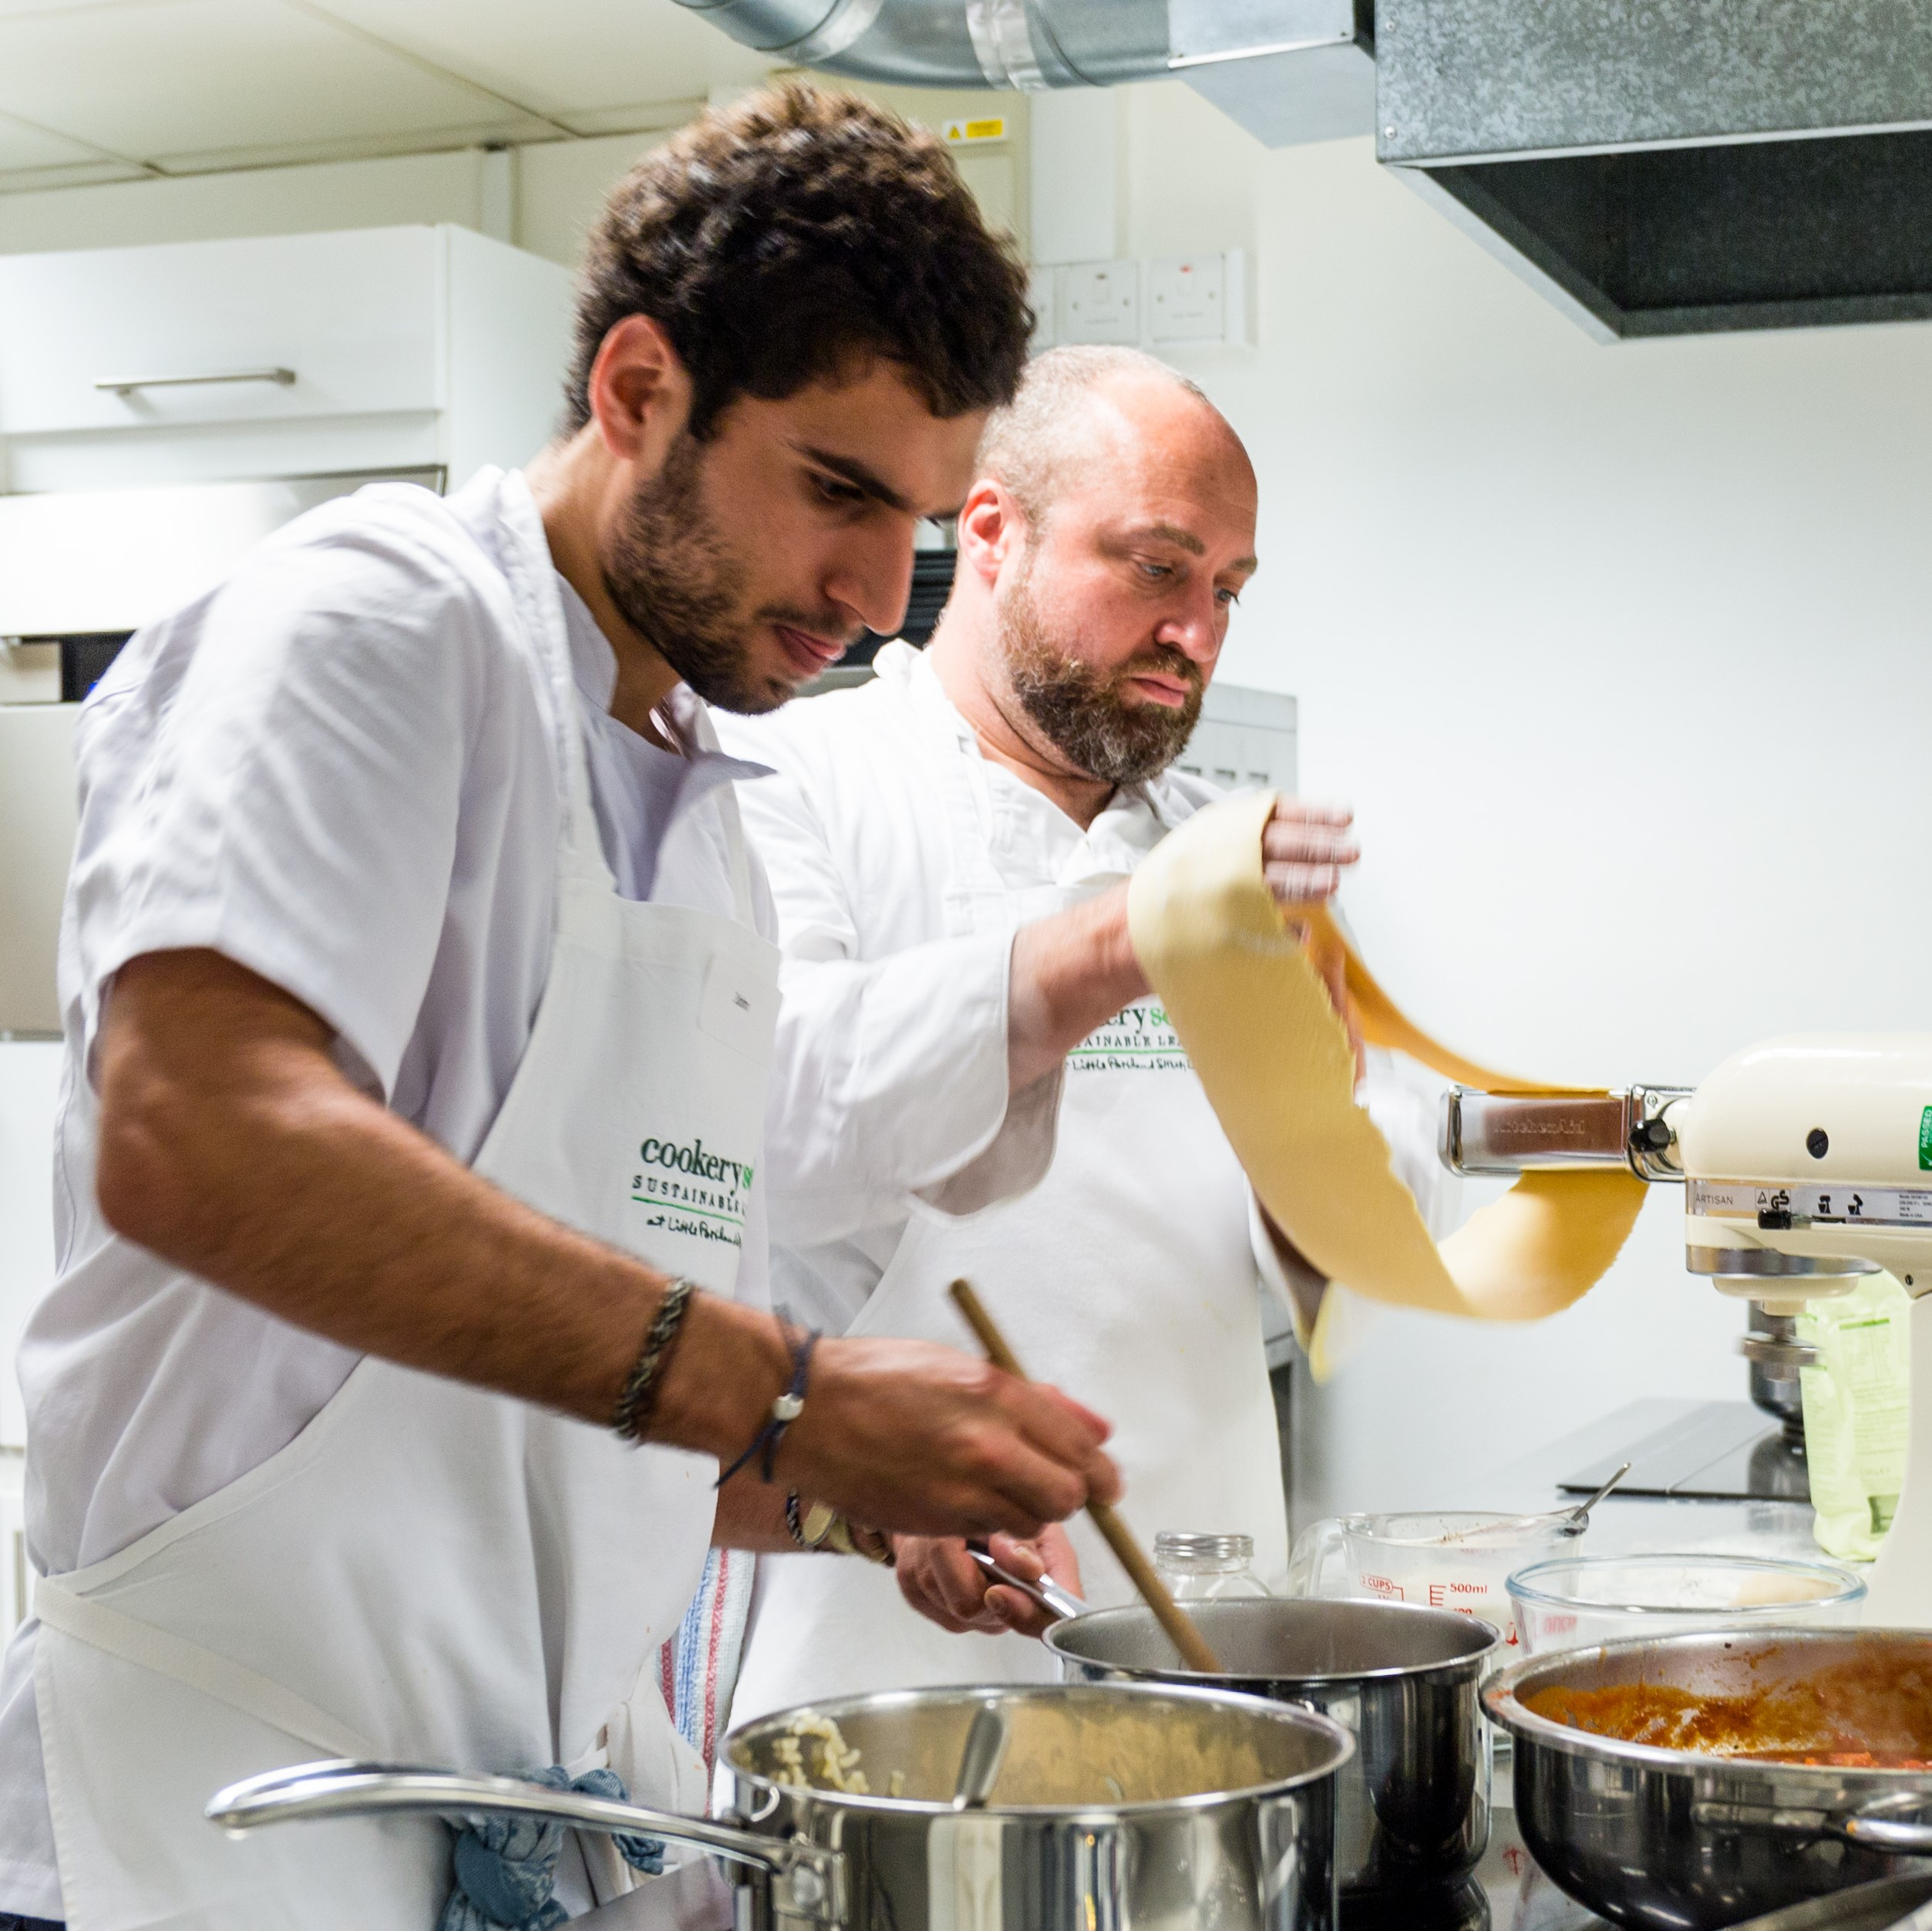 Professional Cook's Certificate in Food and Wine